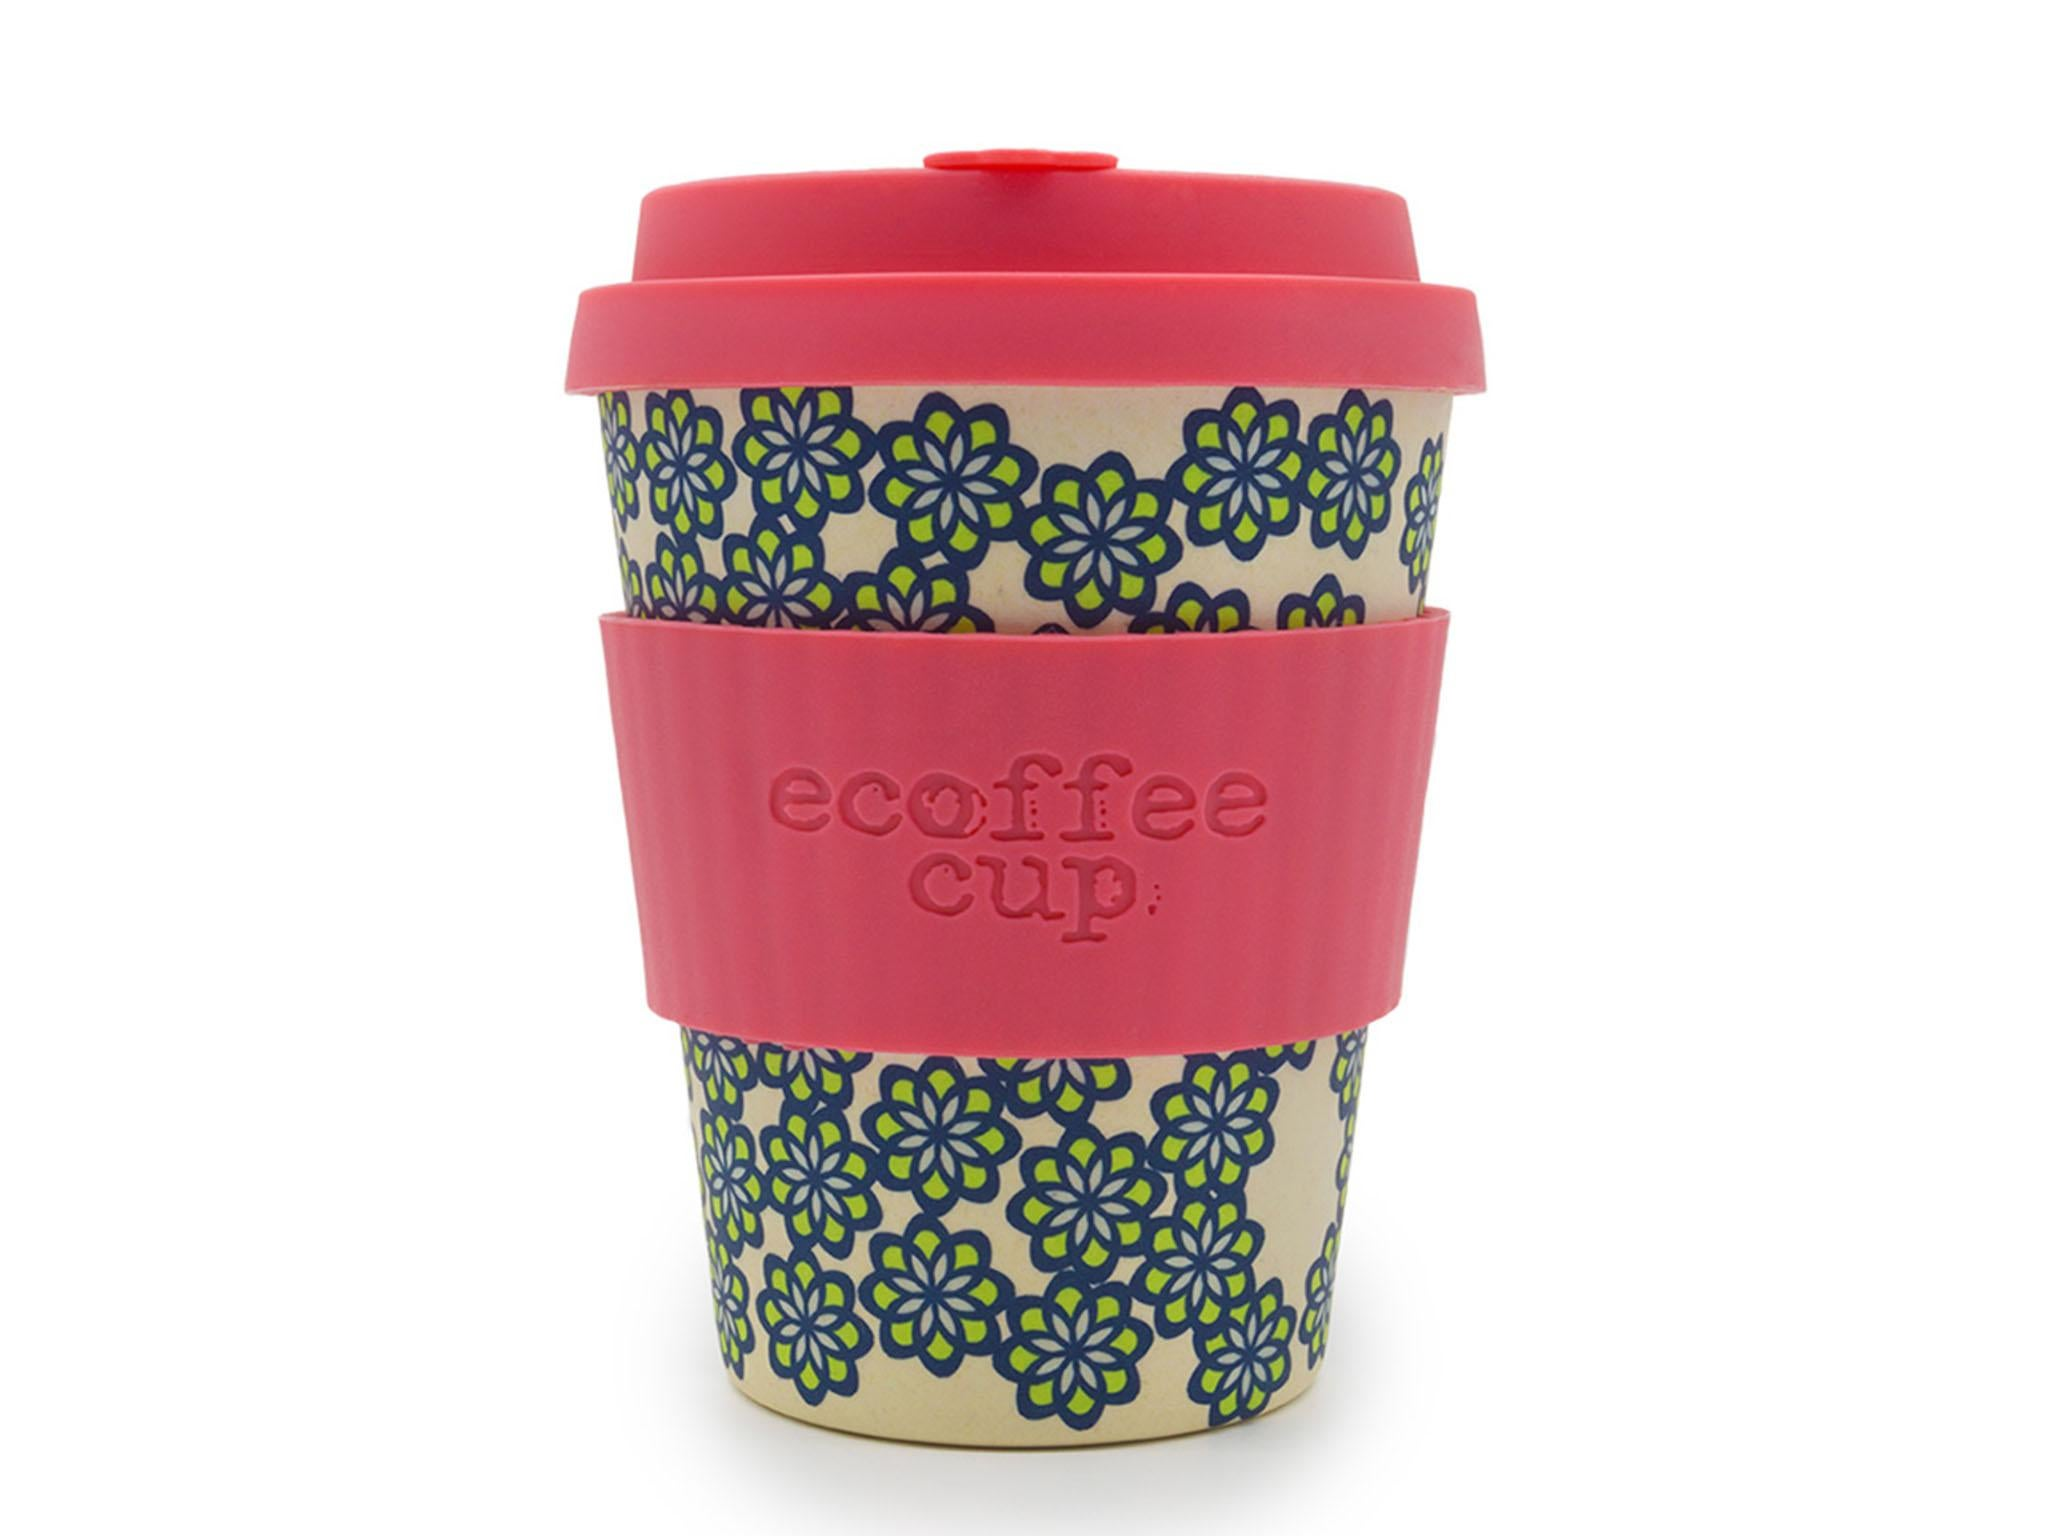 eada5cb46de Best reusable coffee cup guide: Top products for temperature control and  leakproofness